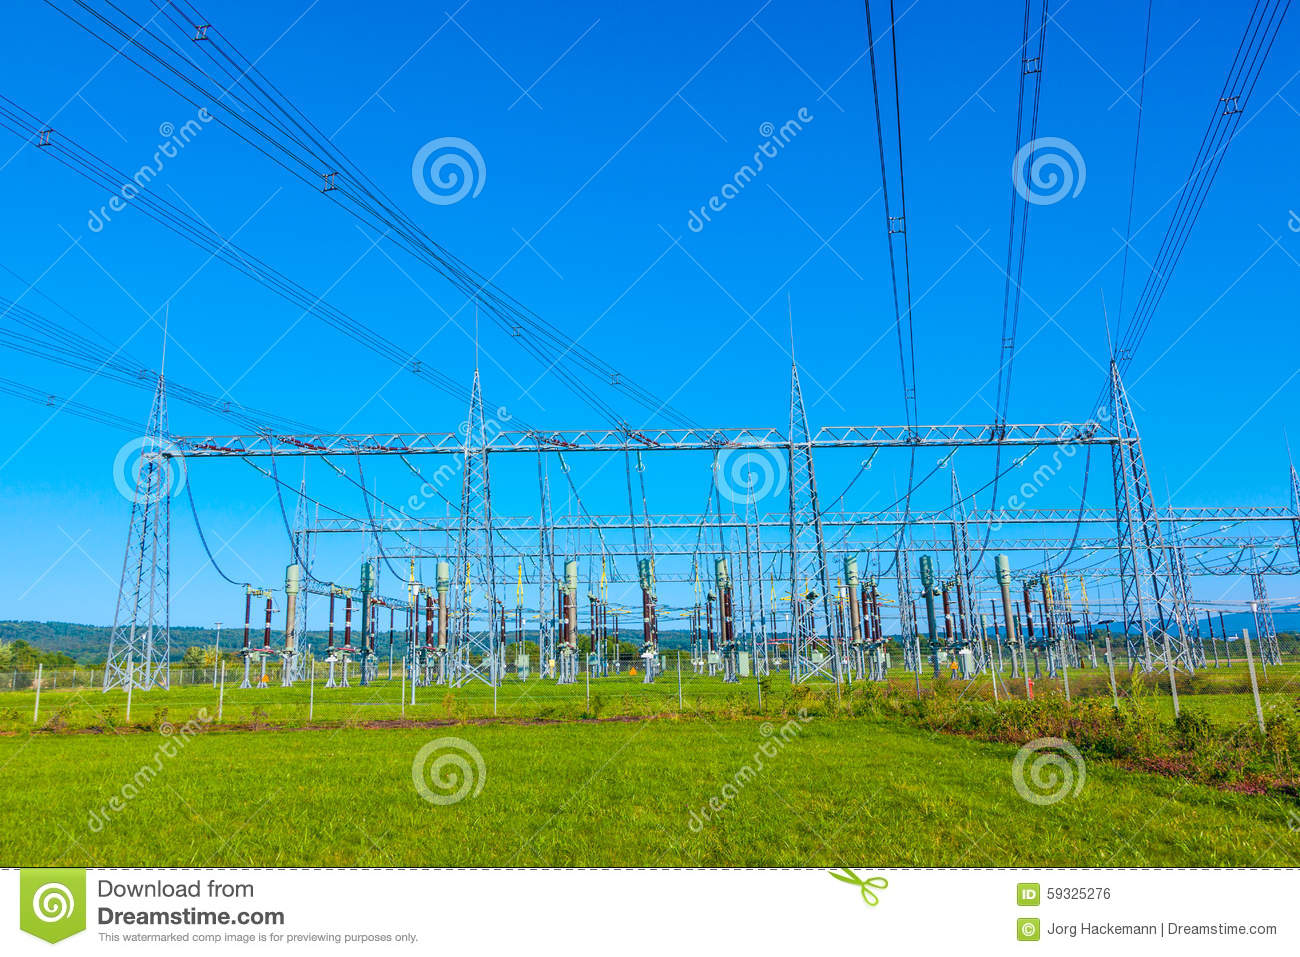 electrical plant near me – the wiring diagram,Wiring diagram,Electrical Plant Near Me